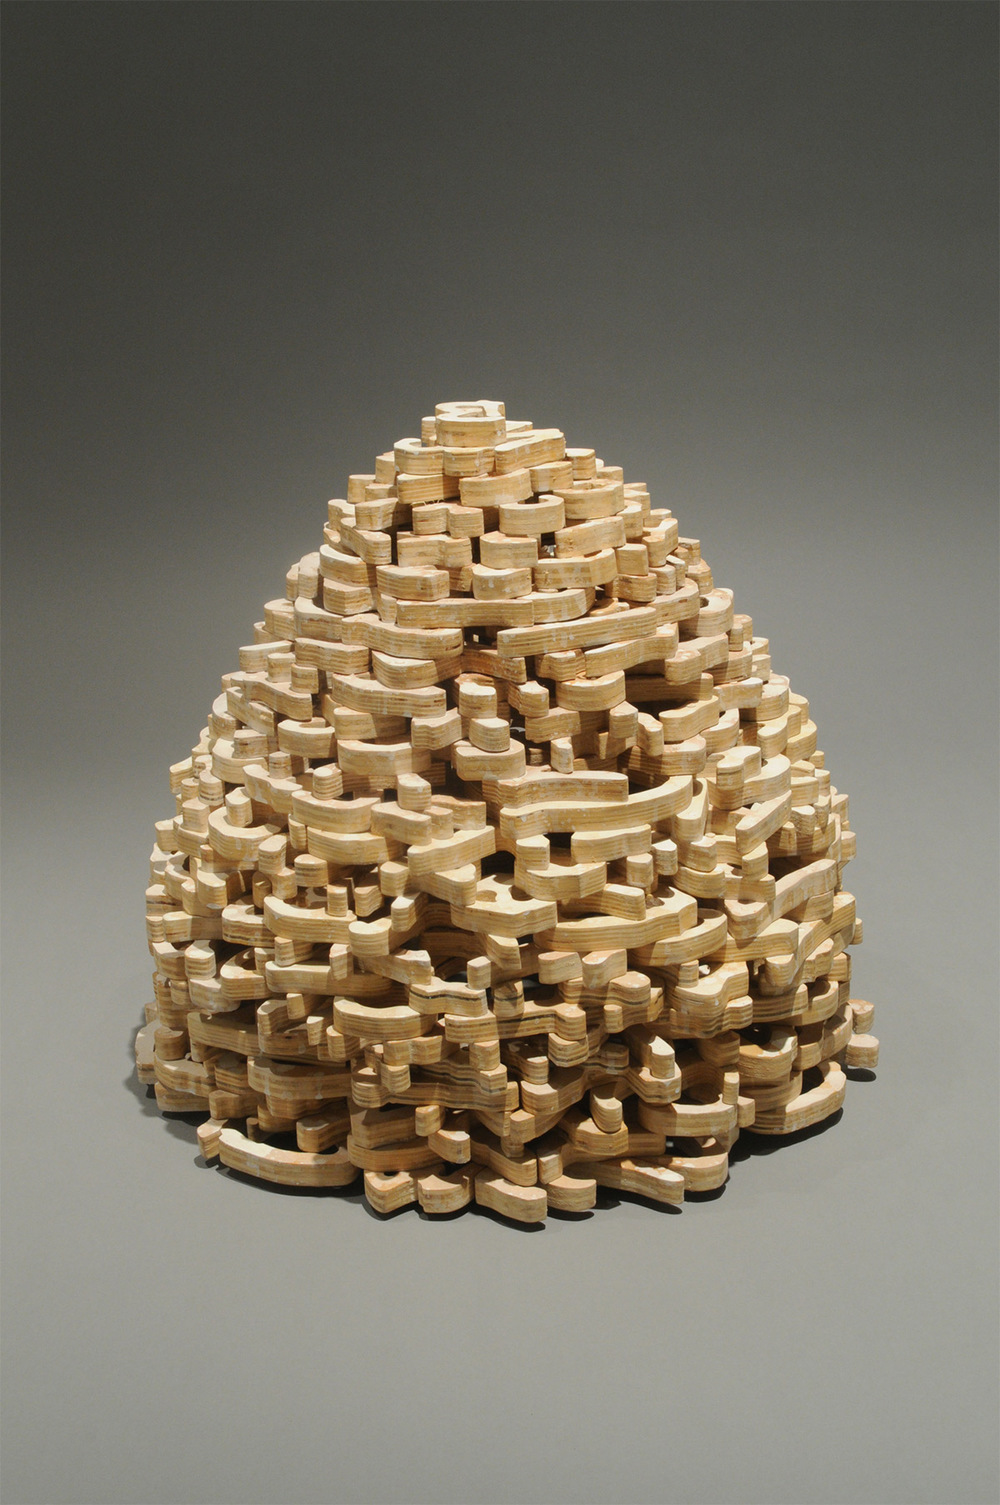 "Cairn – 2008 – 24 x 24 x 24 – Wood - <a href=""mailto:judbergeron@mac.com?subject=Inquire: Cairn – 2008 – 24 x 24 x 24 – Wood"">Inquire</a>"